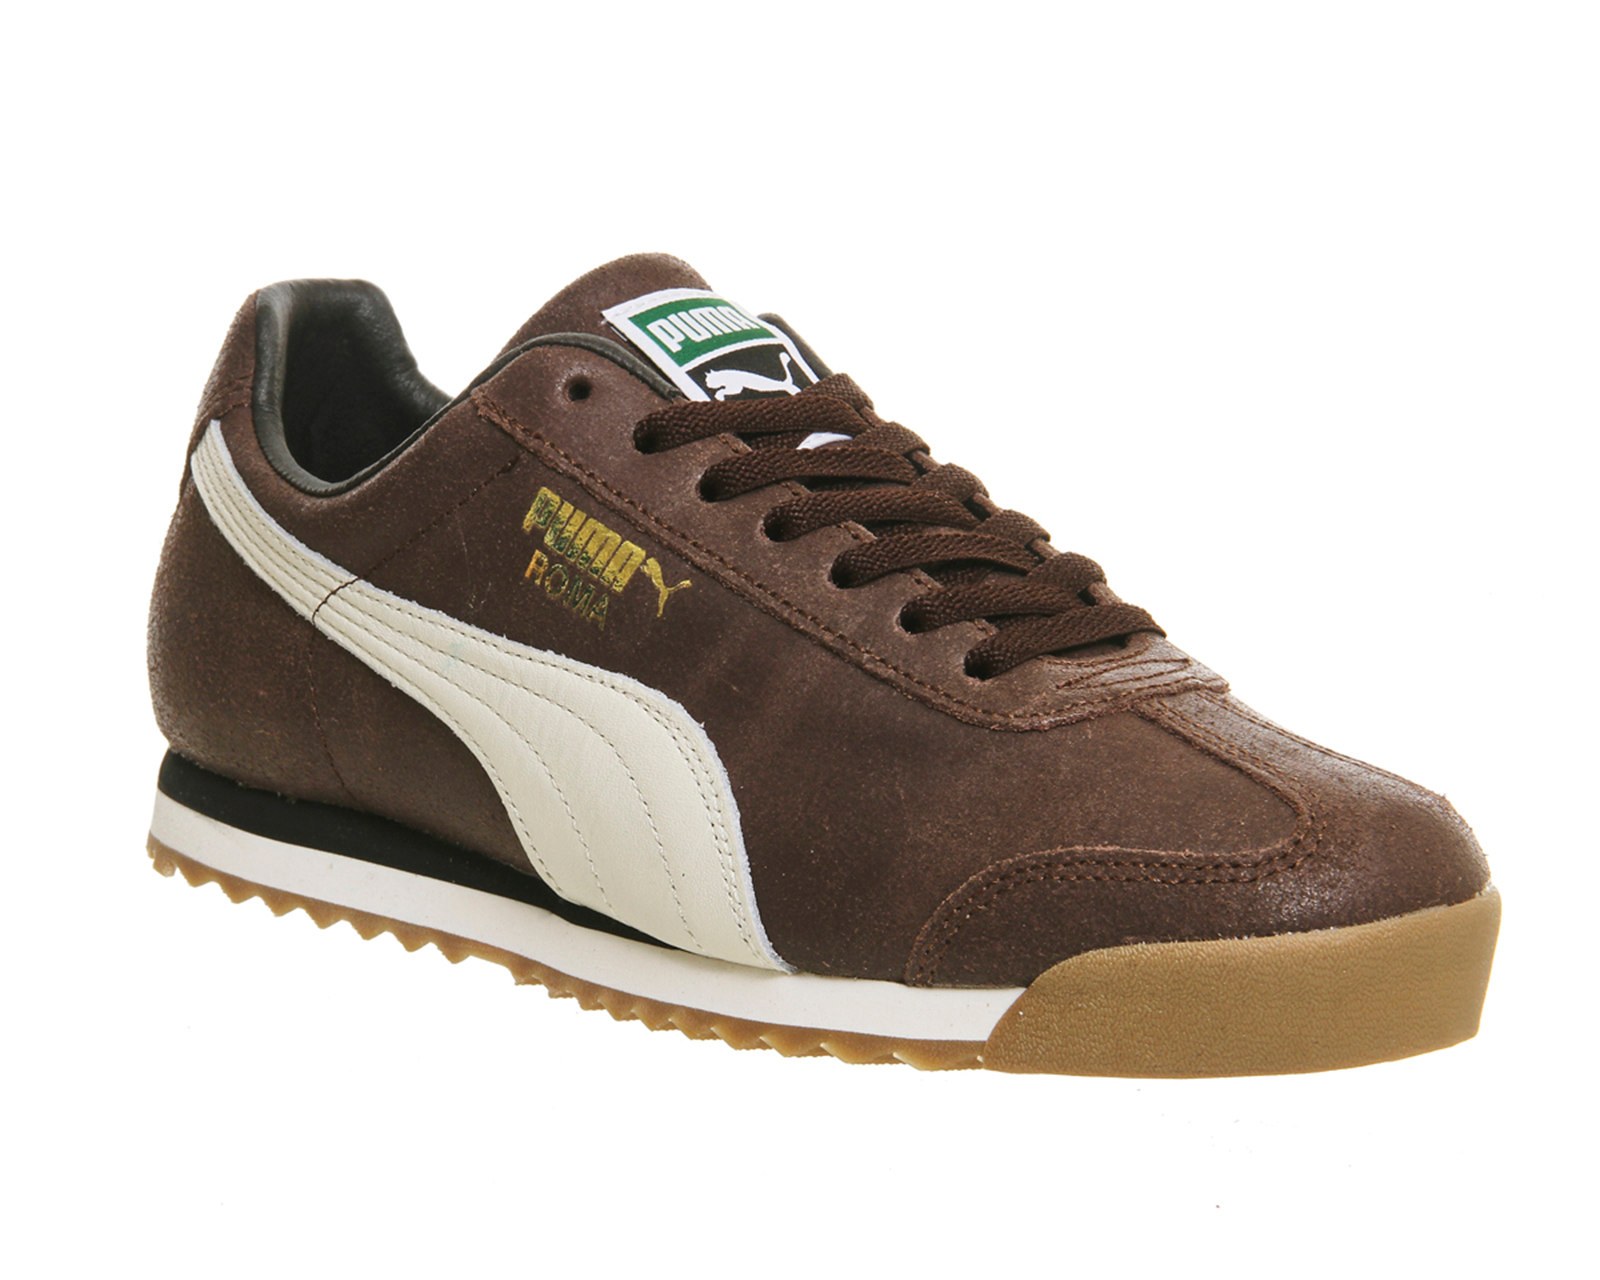 puma roma distressed brown whisper white trainers shoes ebay